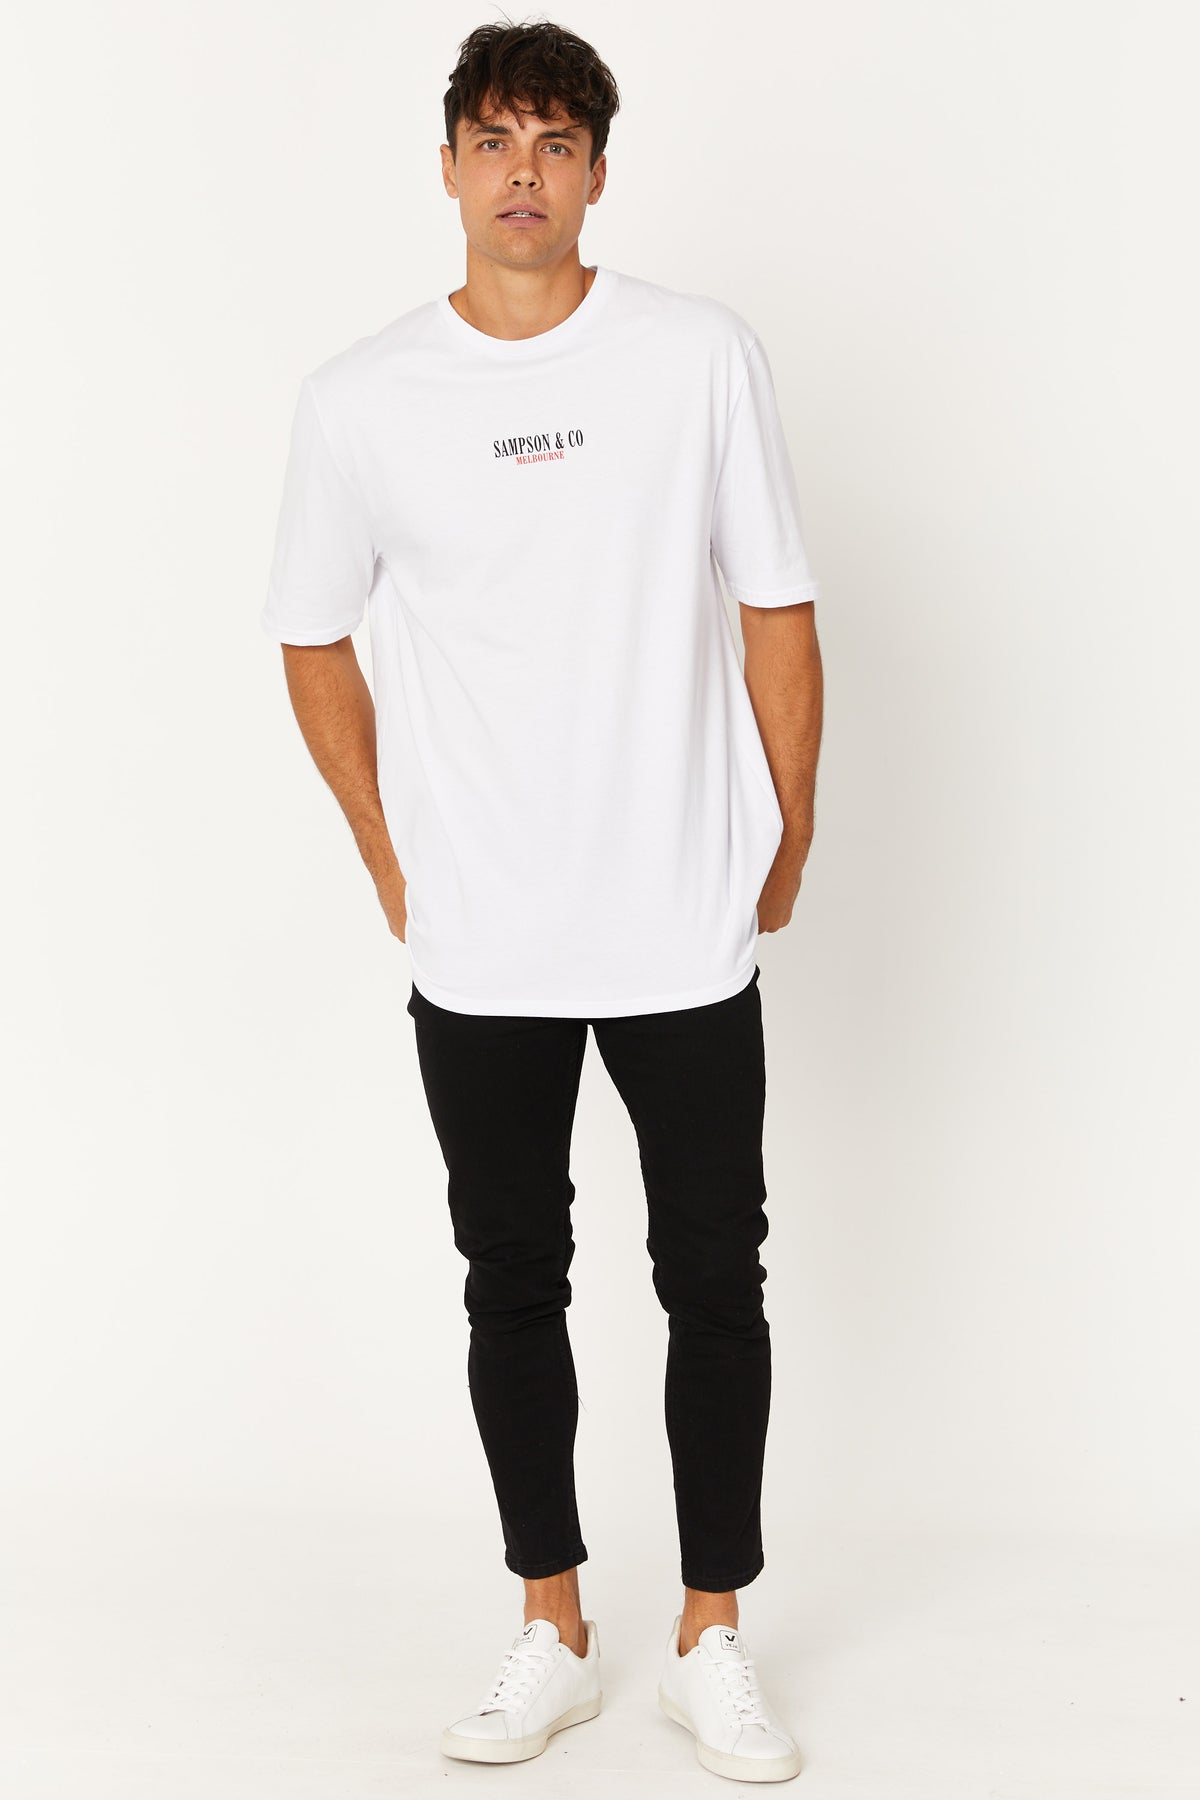 Washed Tee Sampson Melbourne White